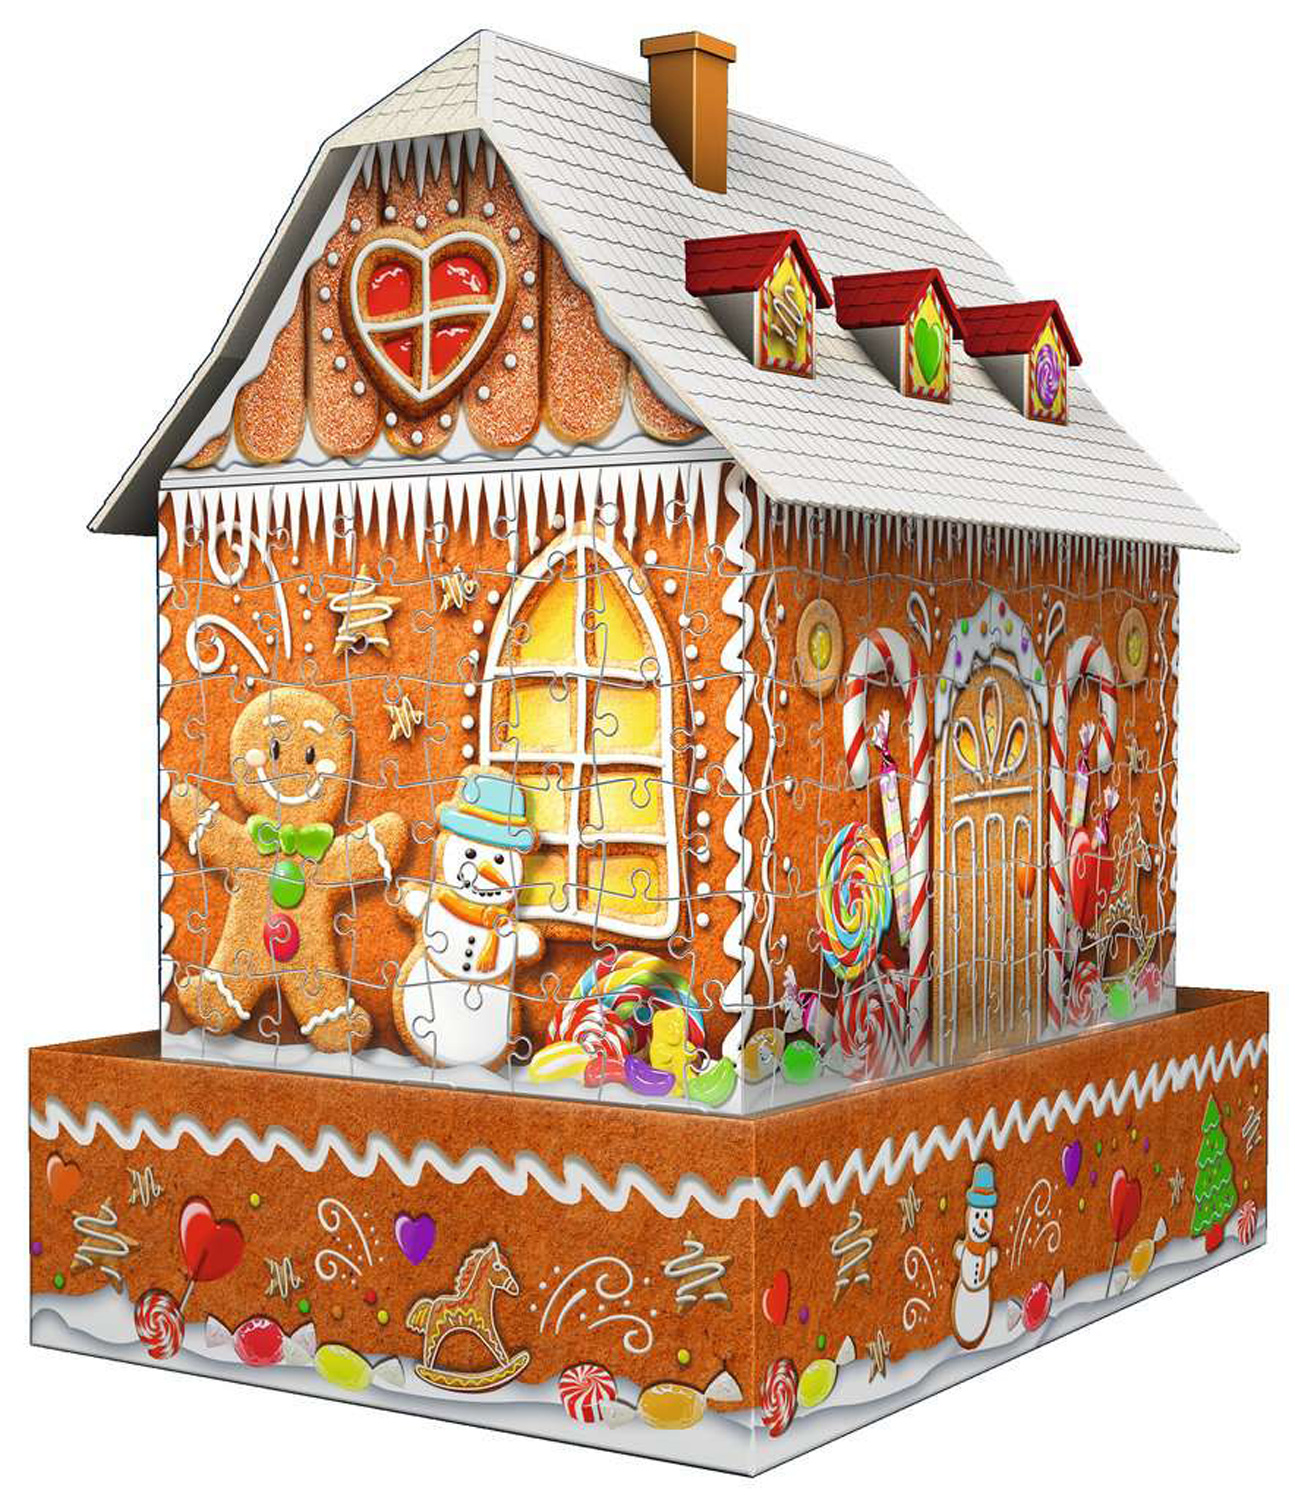 Gingerbread House Night Food and Drink Jigsaw Puzzle